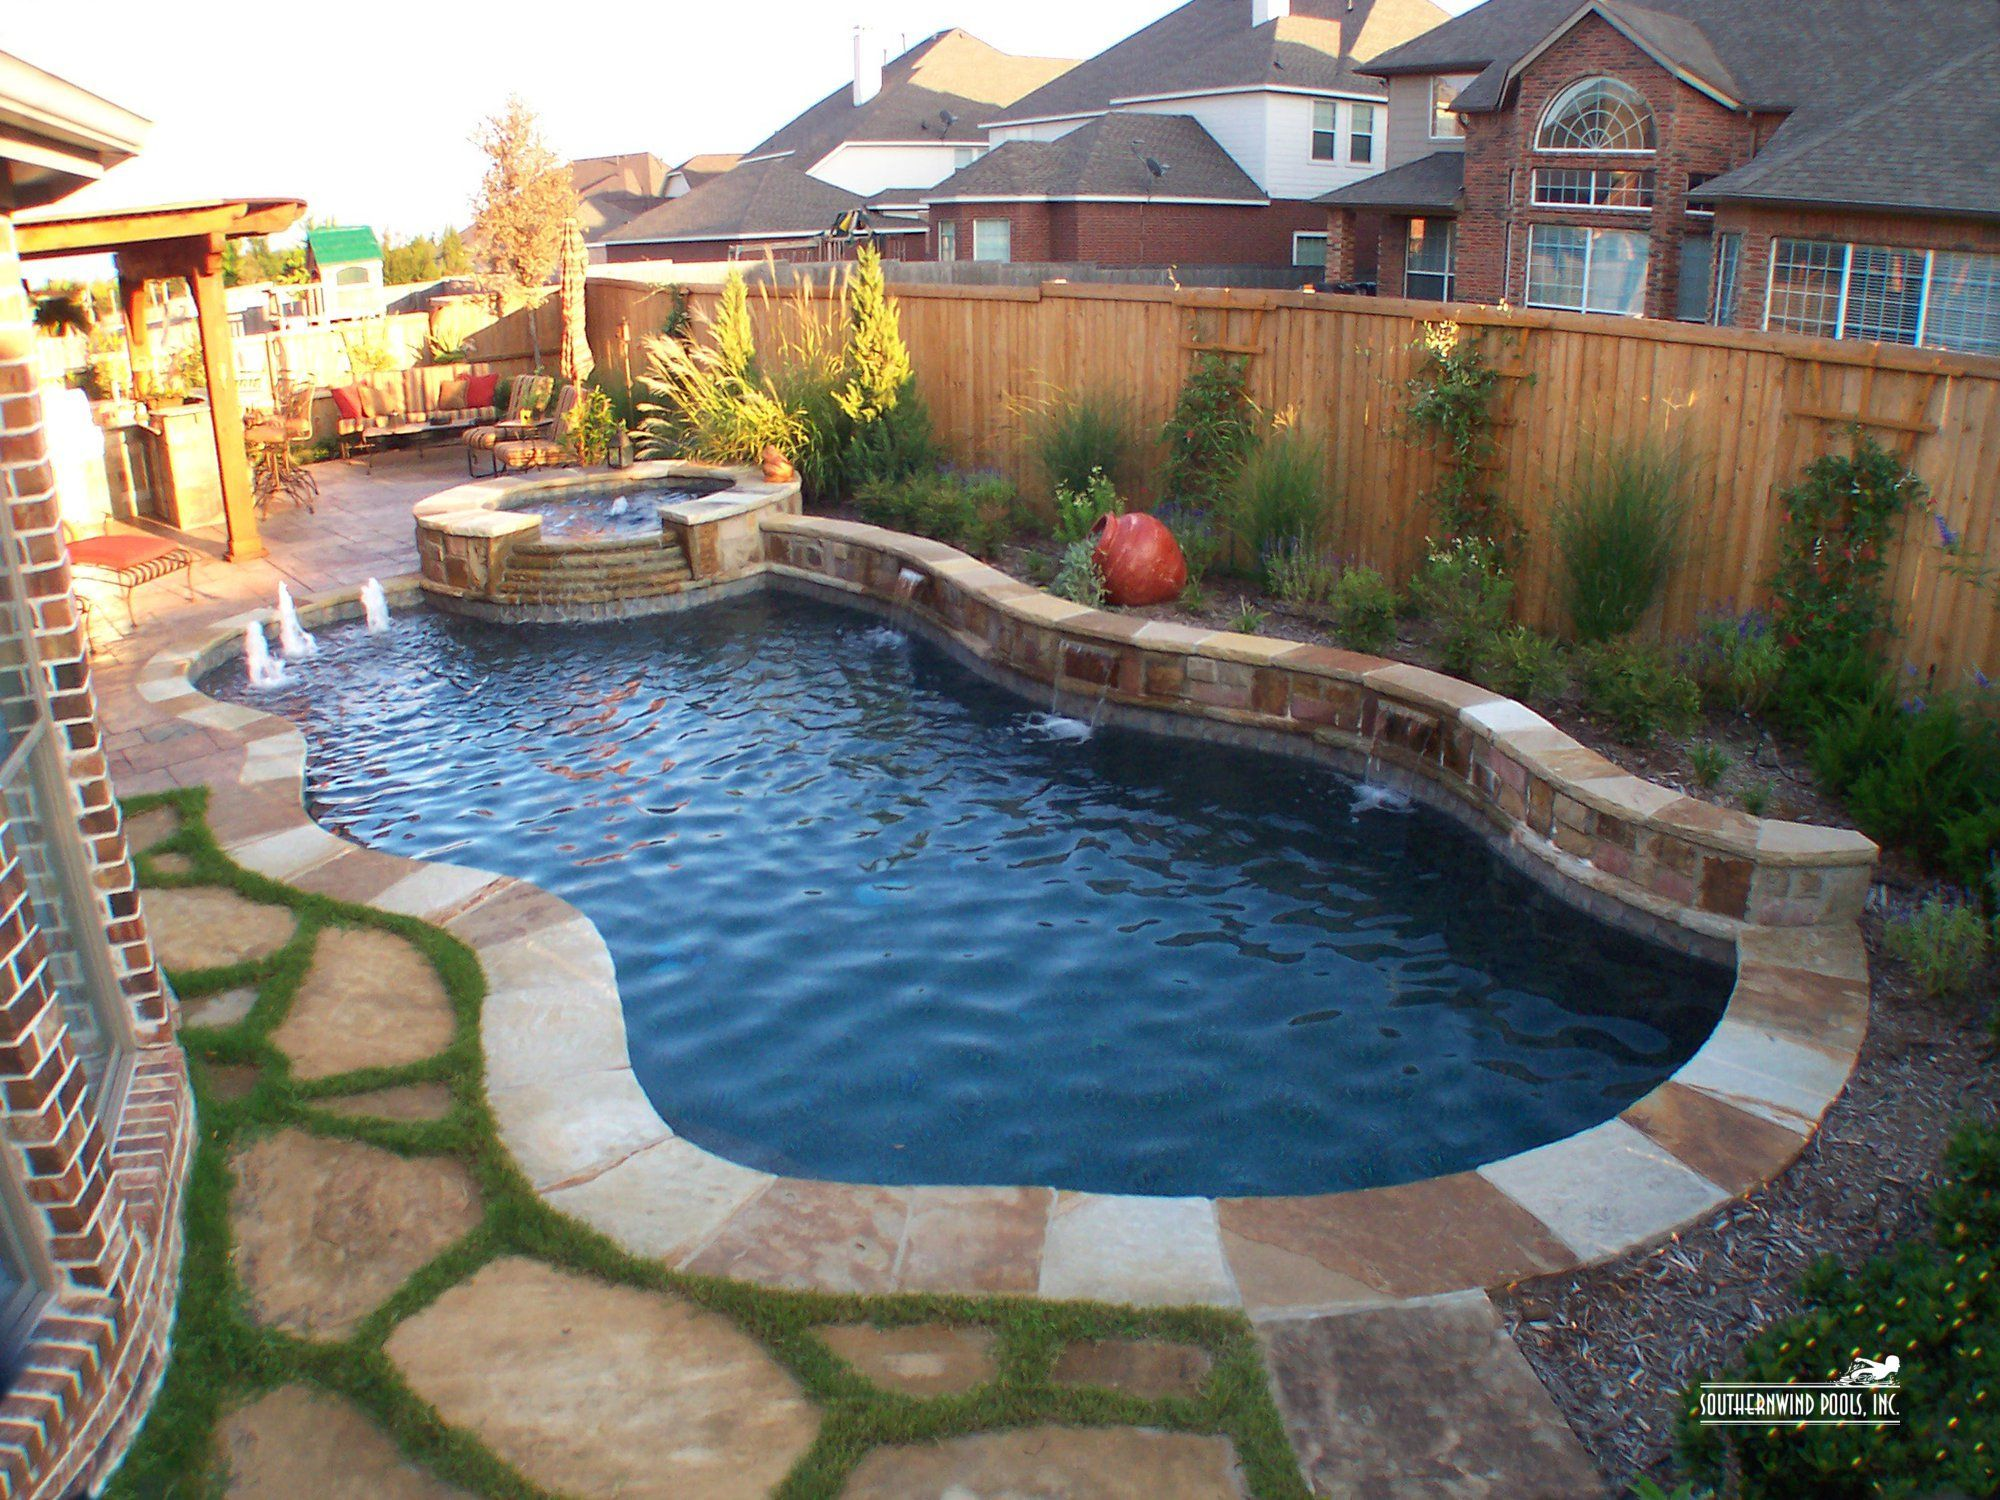 Southernwind Pools Our Pools Natural / Free Form Pools